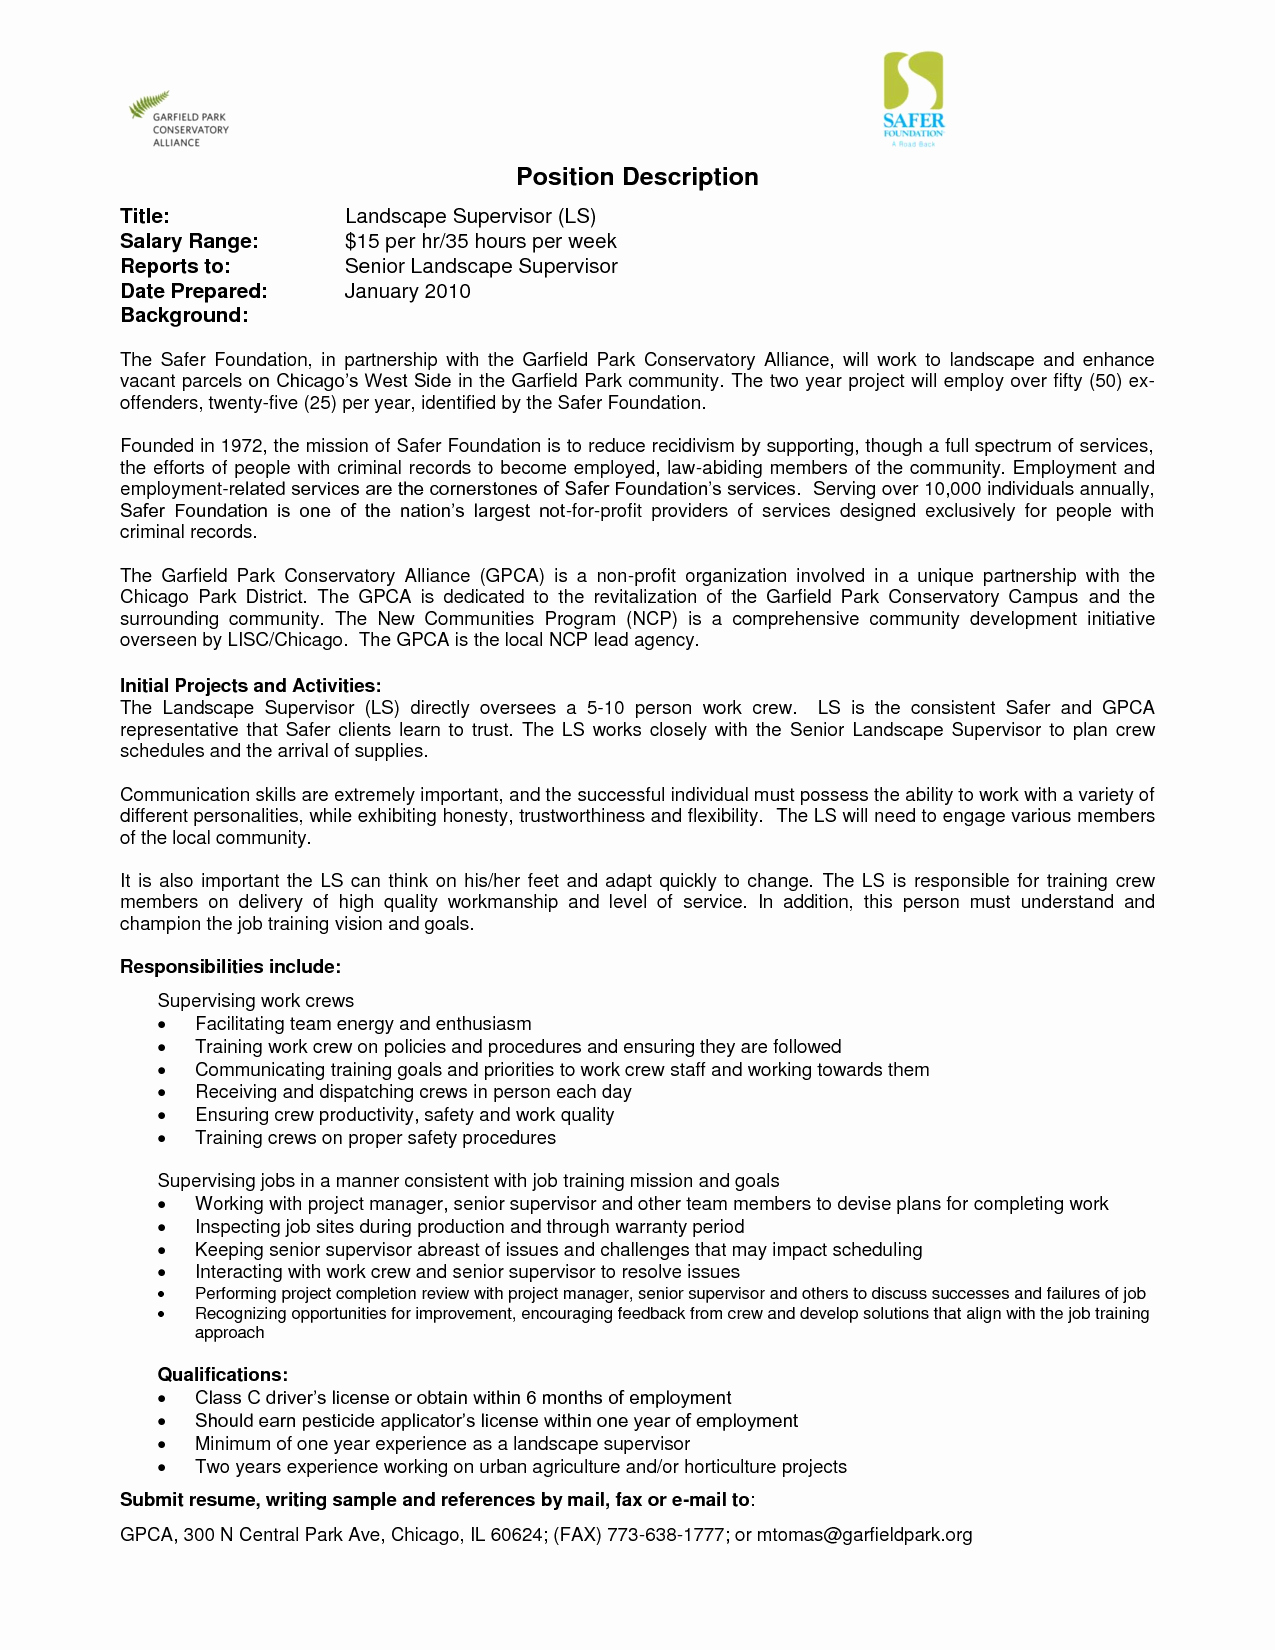 Landscaping Job Description for Resume Resume Ideas